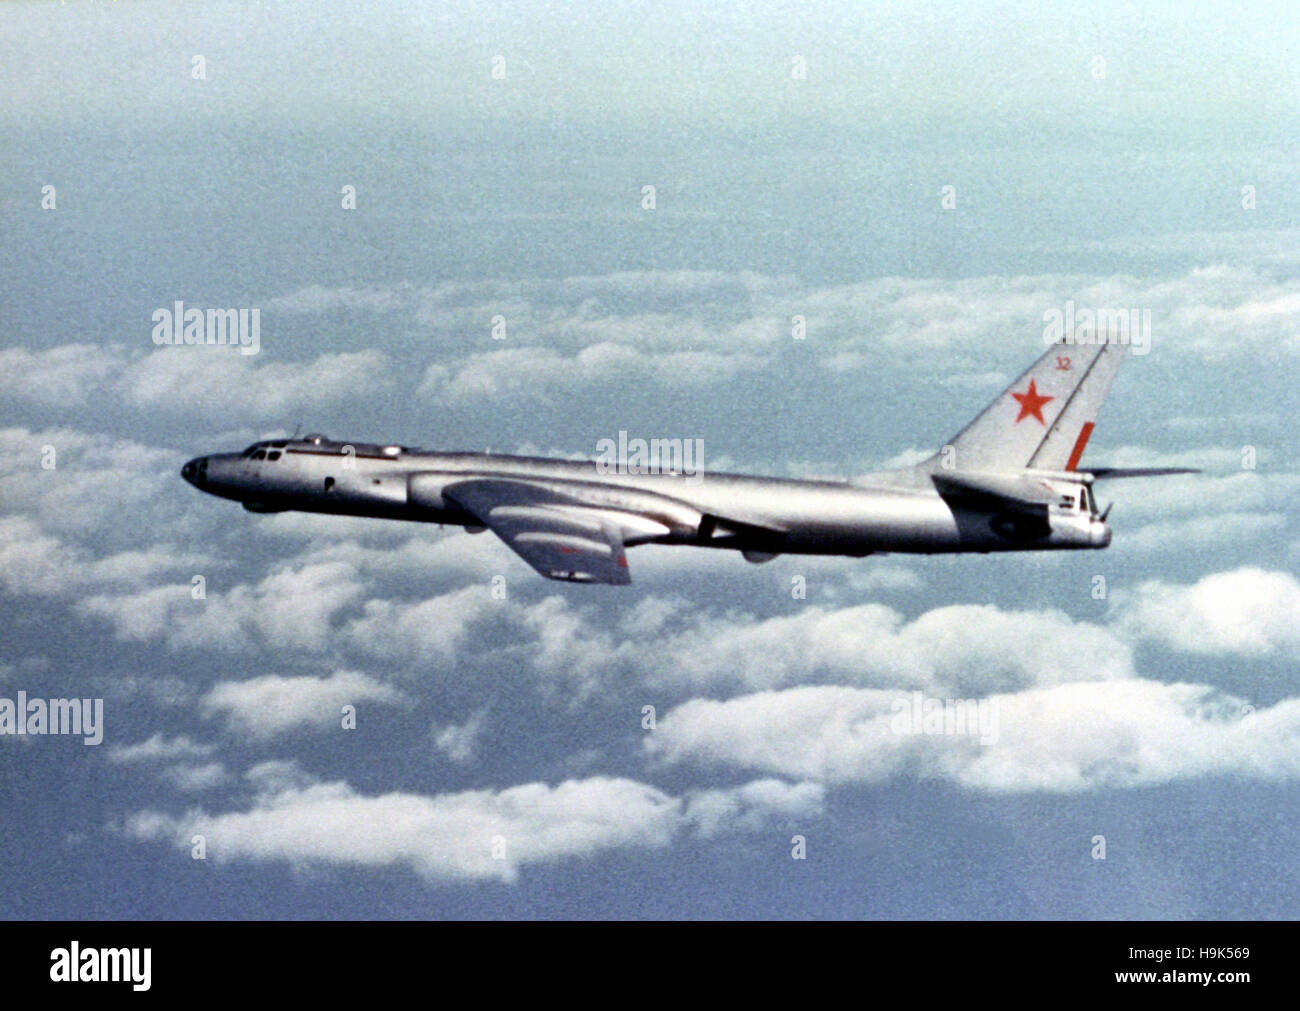 Soviet Tu-16 E aircraft. The Tupolev Tu-16, twin-engined jet strategic bomber used by the Soviet Union. - Stock Image